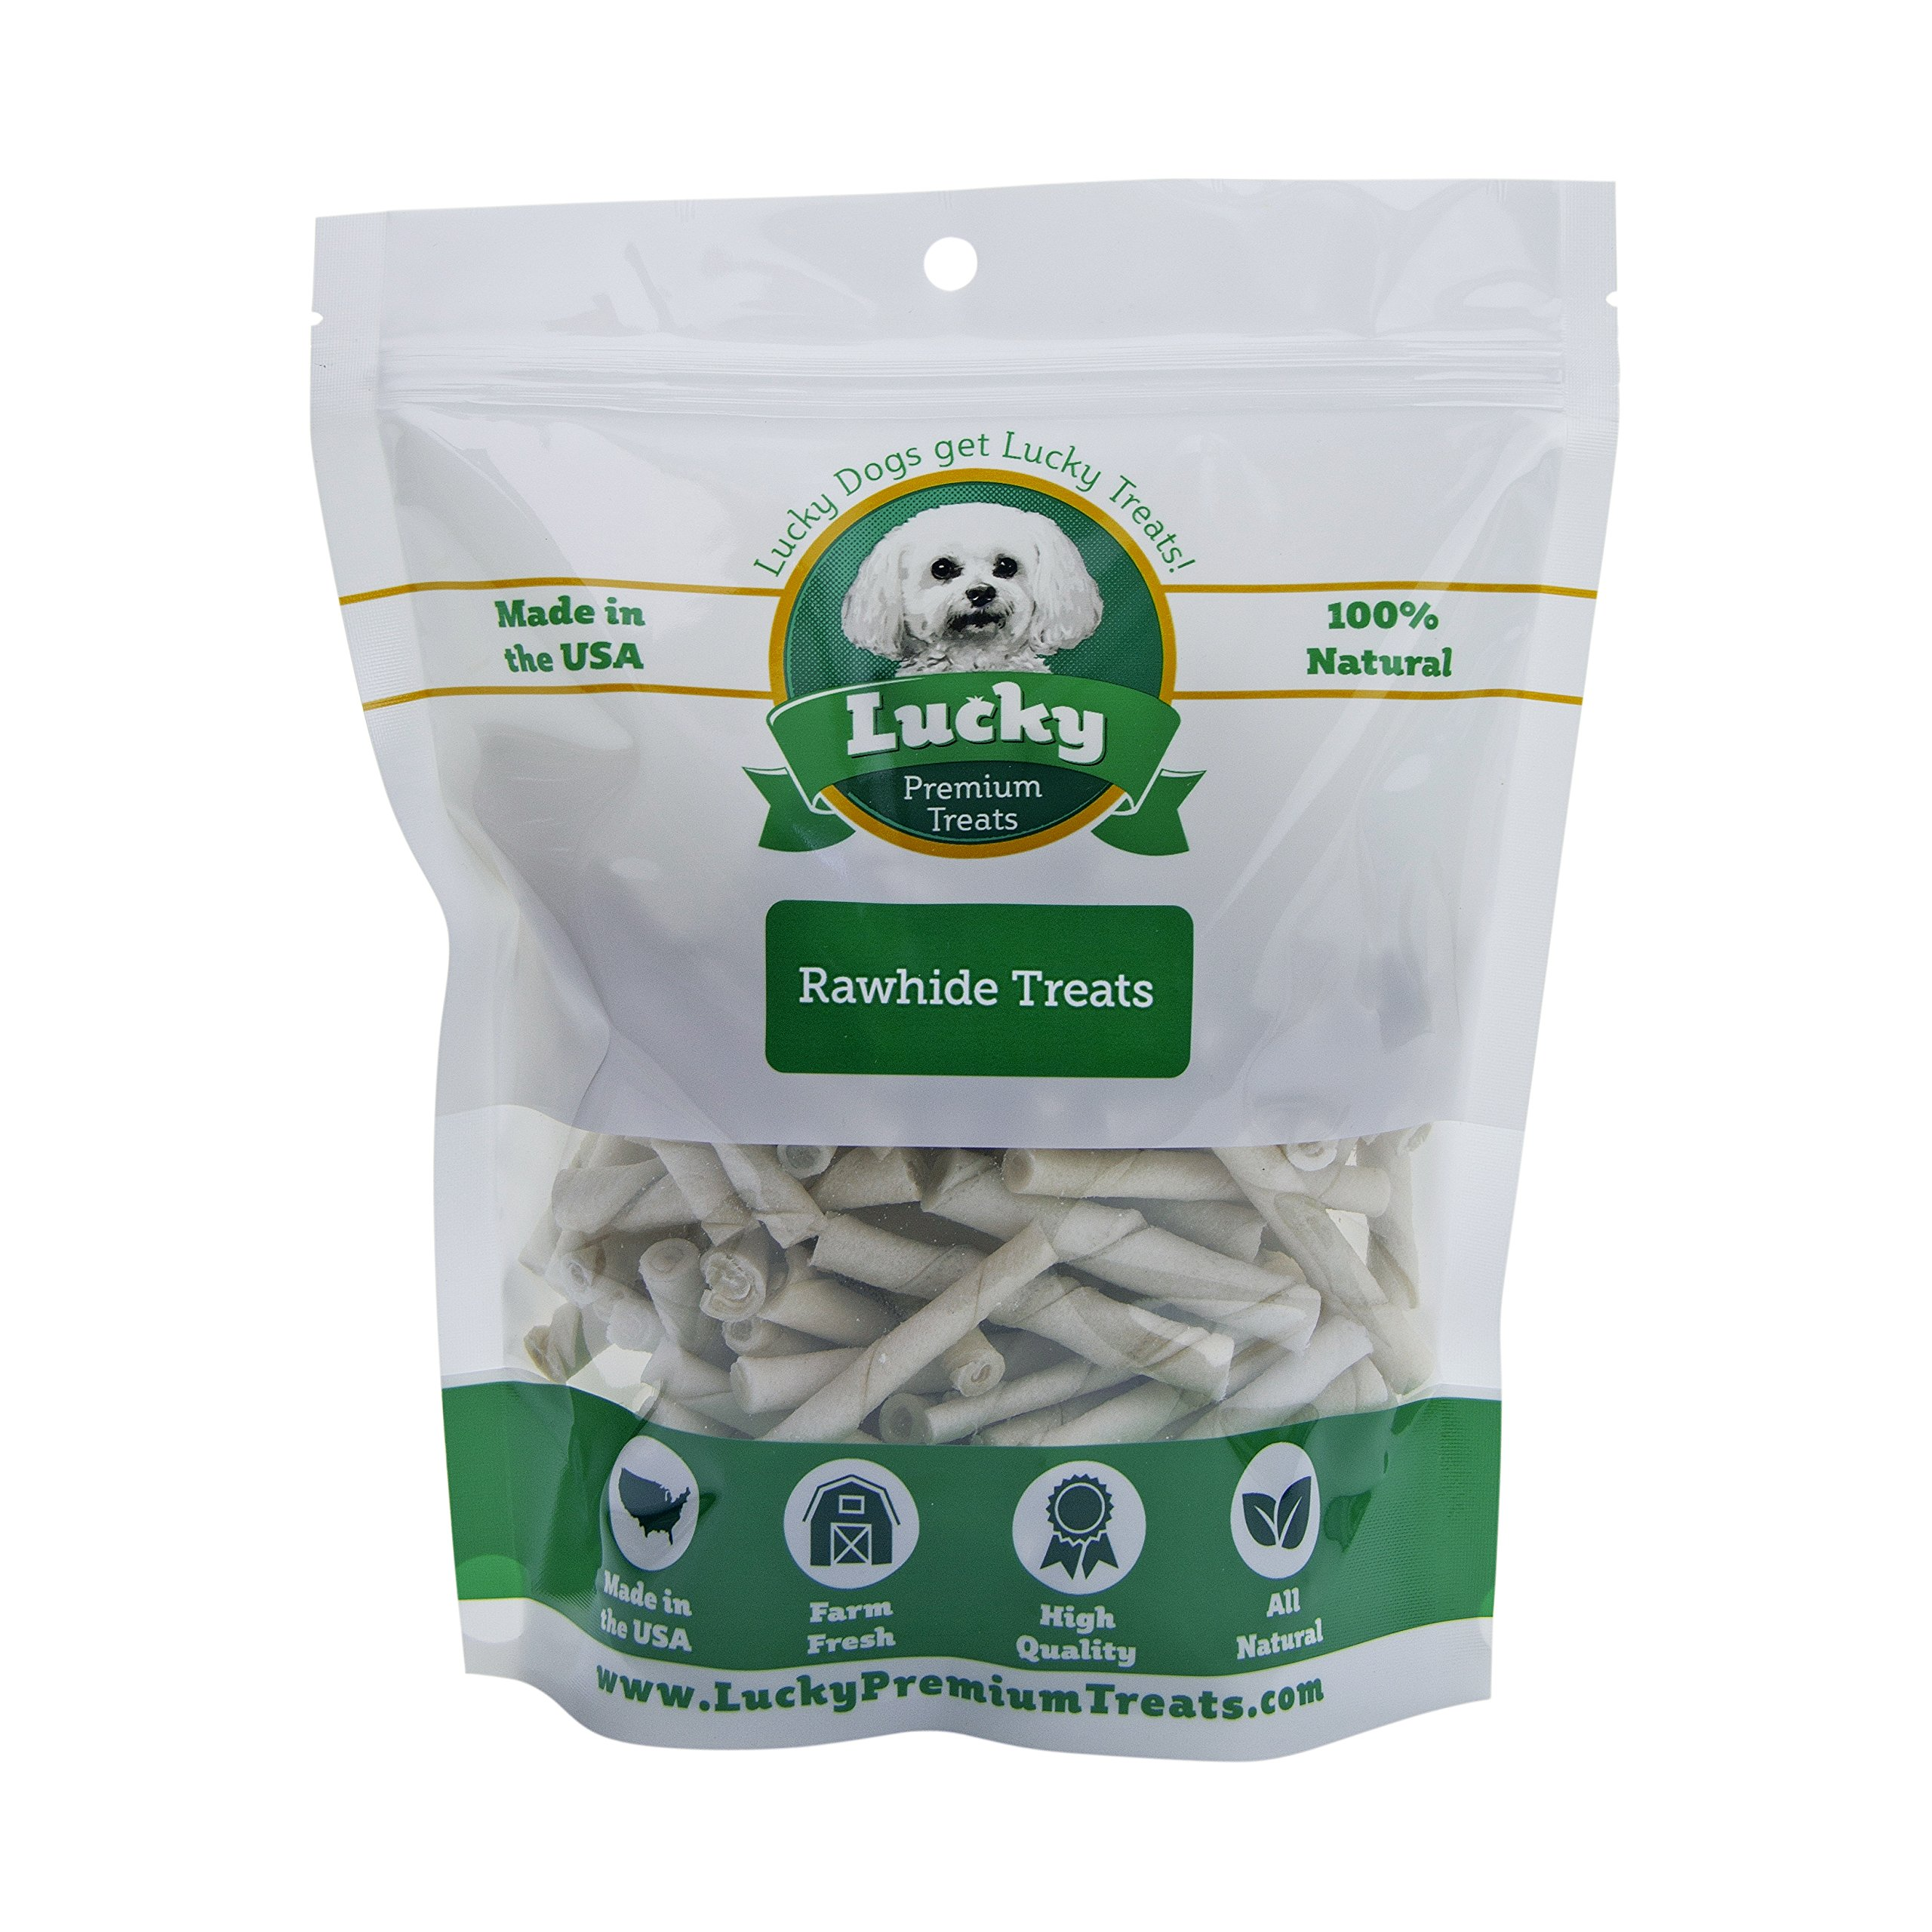 Plain Rawhide Dog Treats for Toy Size Dogs Made in the USA Only by Lucky Premium Treats, 290 Chews